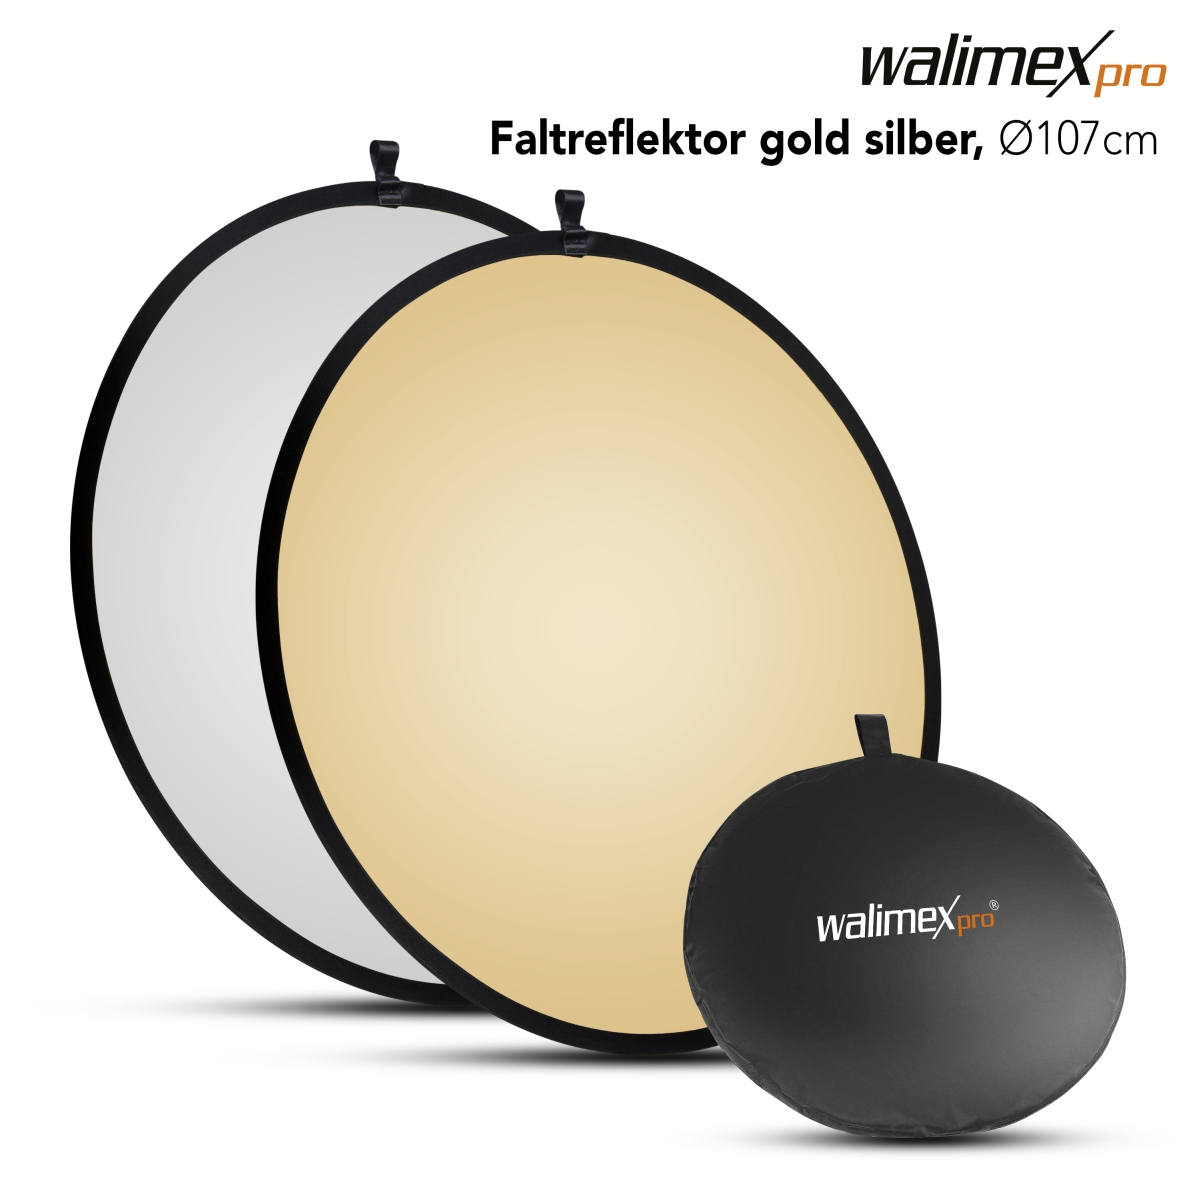 Walimex Foldable Reflector golden/silver, 107cm